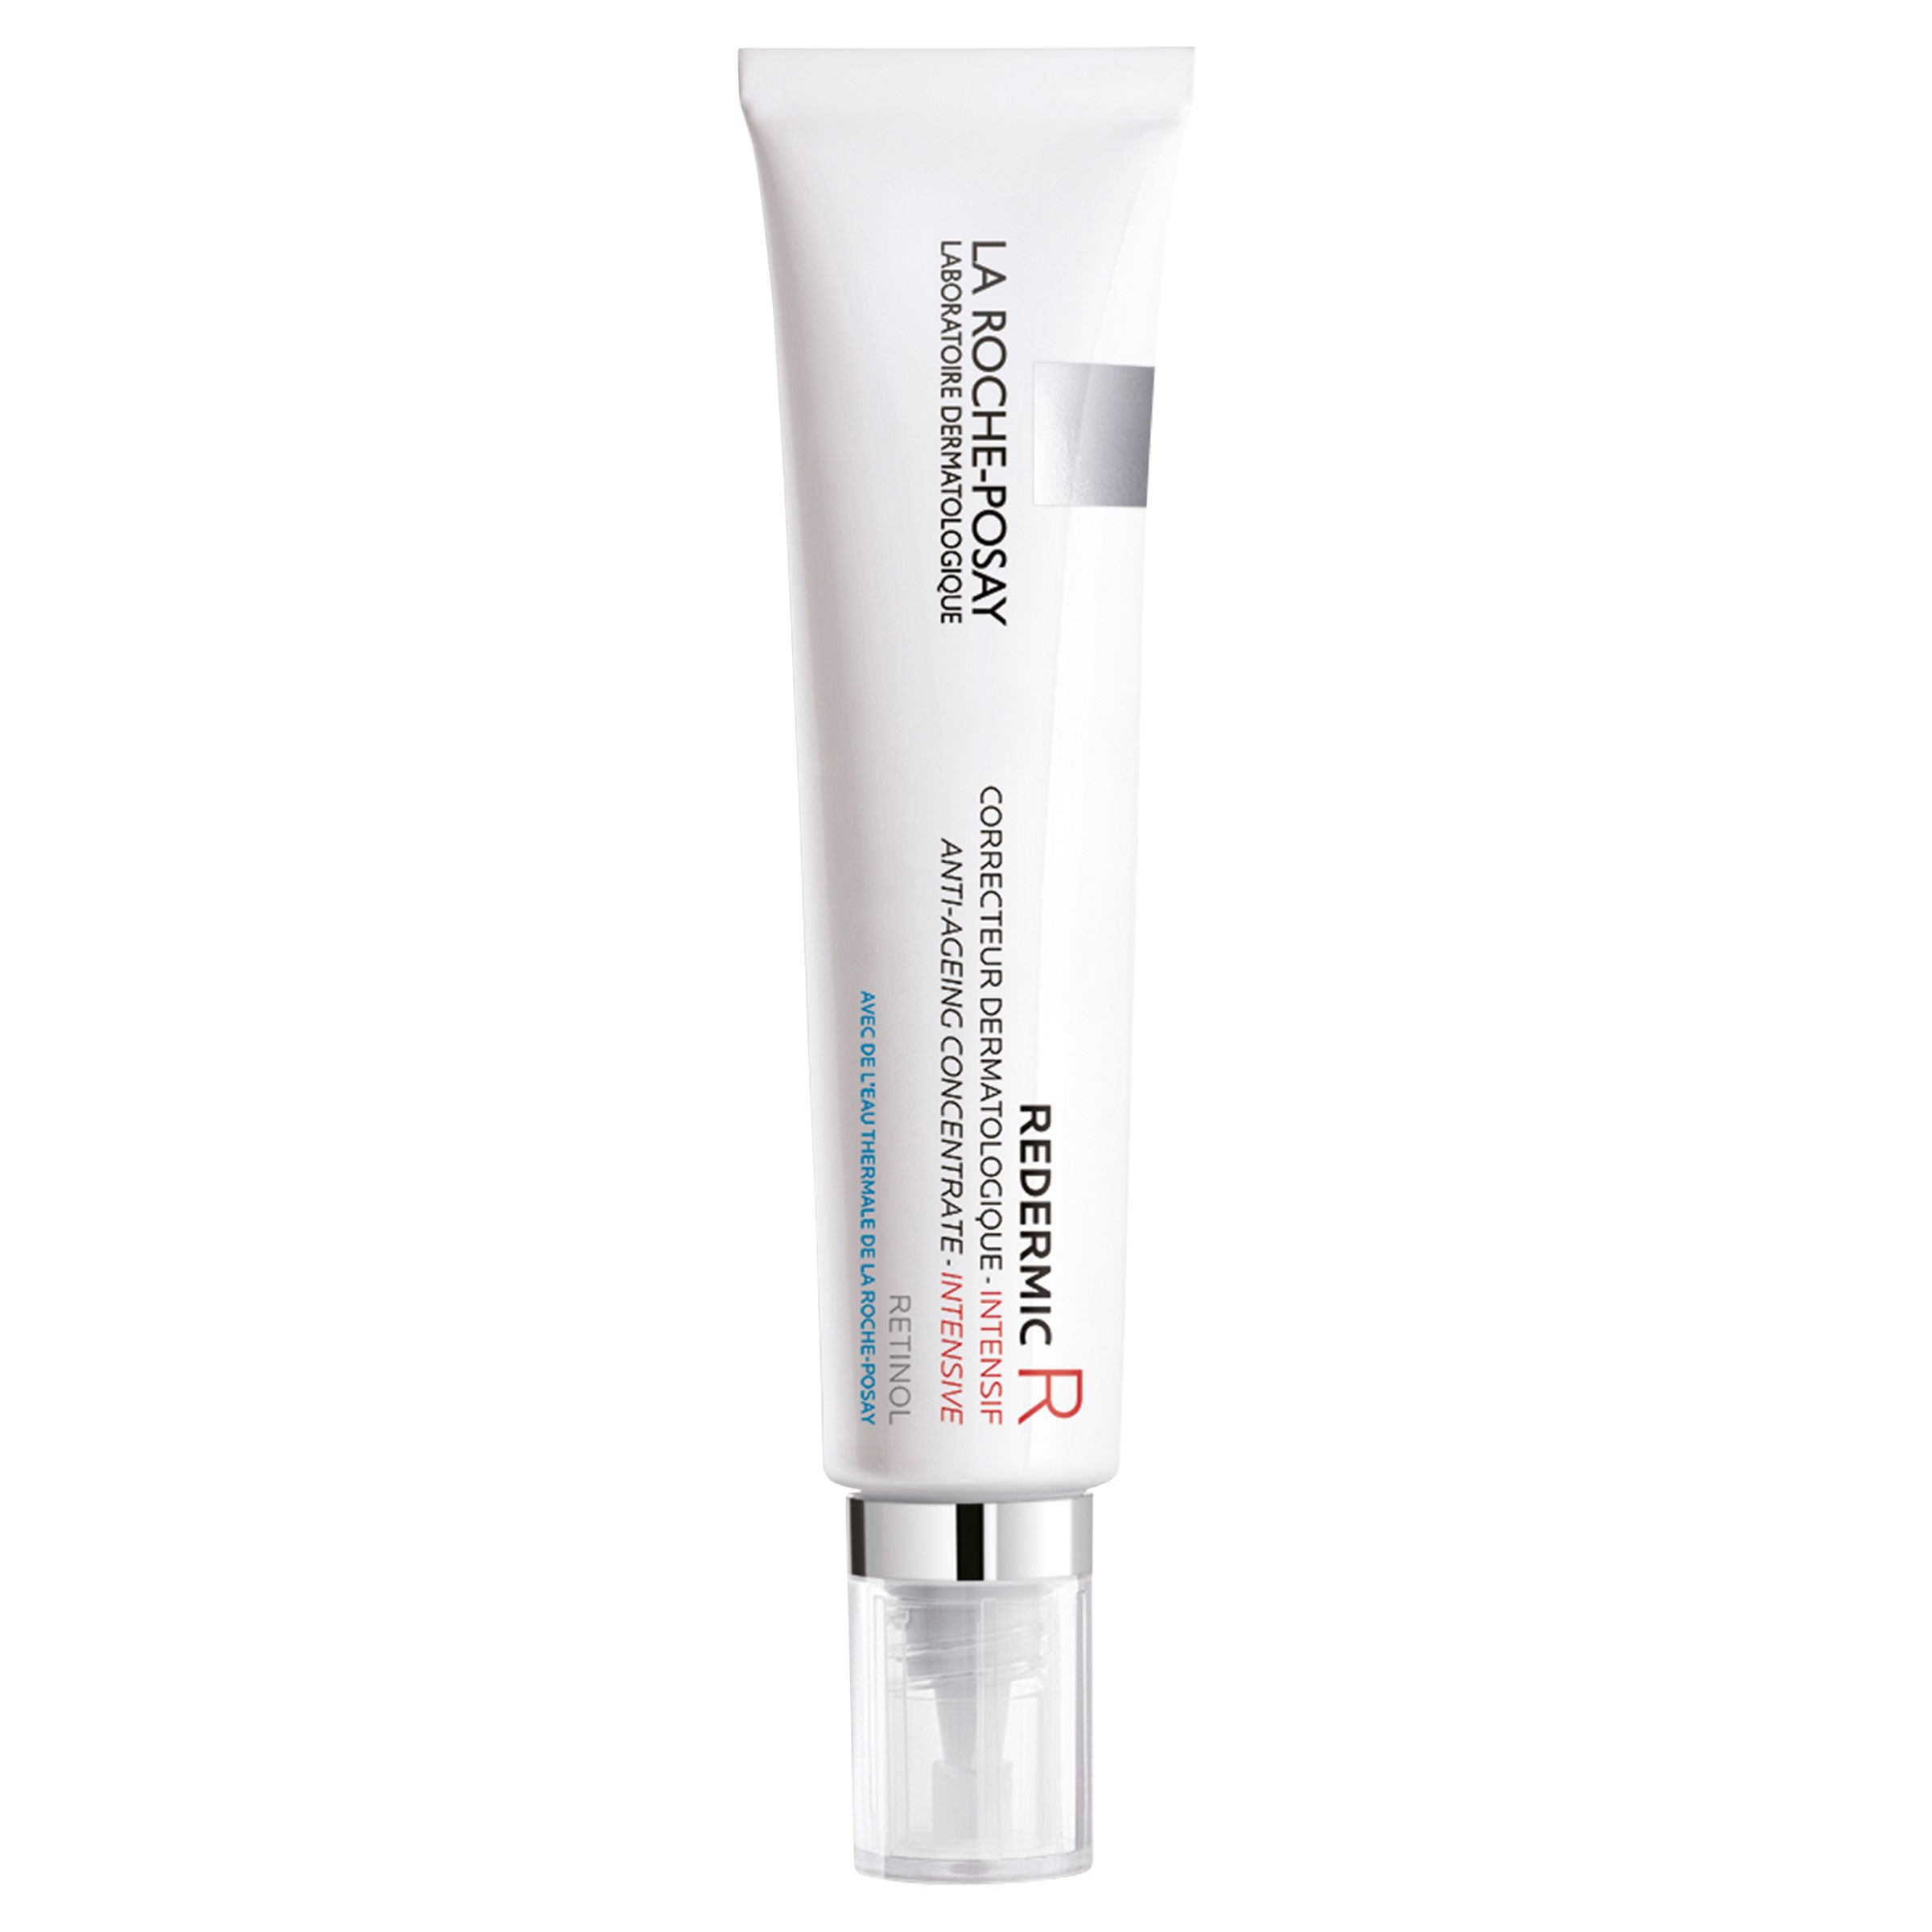 La Roche-Posay Redermic R Anti-Aging Concentrate Face Cream with Pure Retinol, 1.01 Fl. Oz.